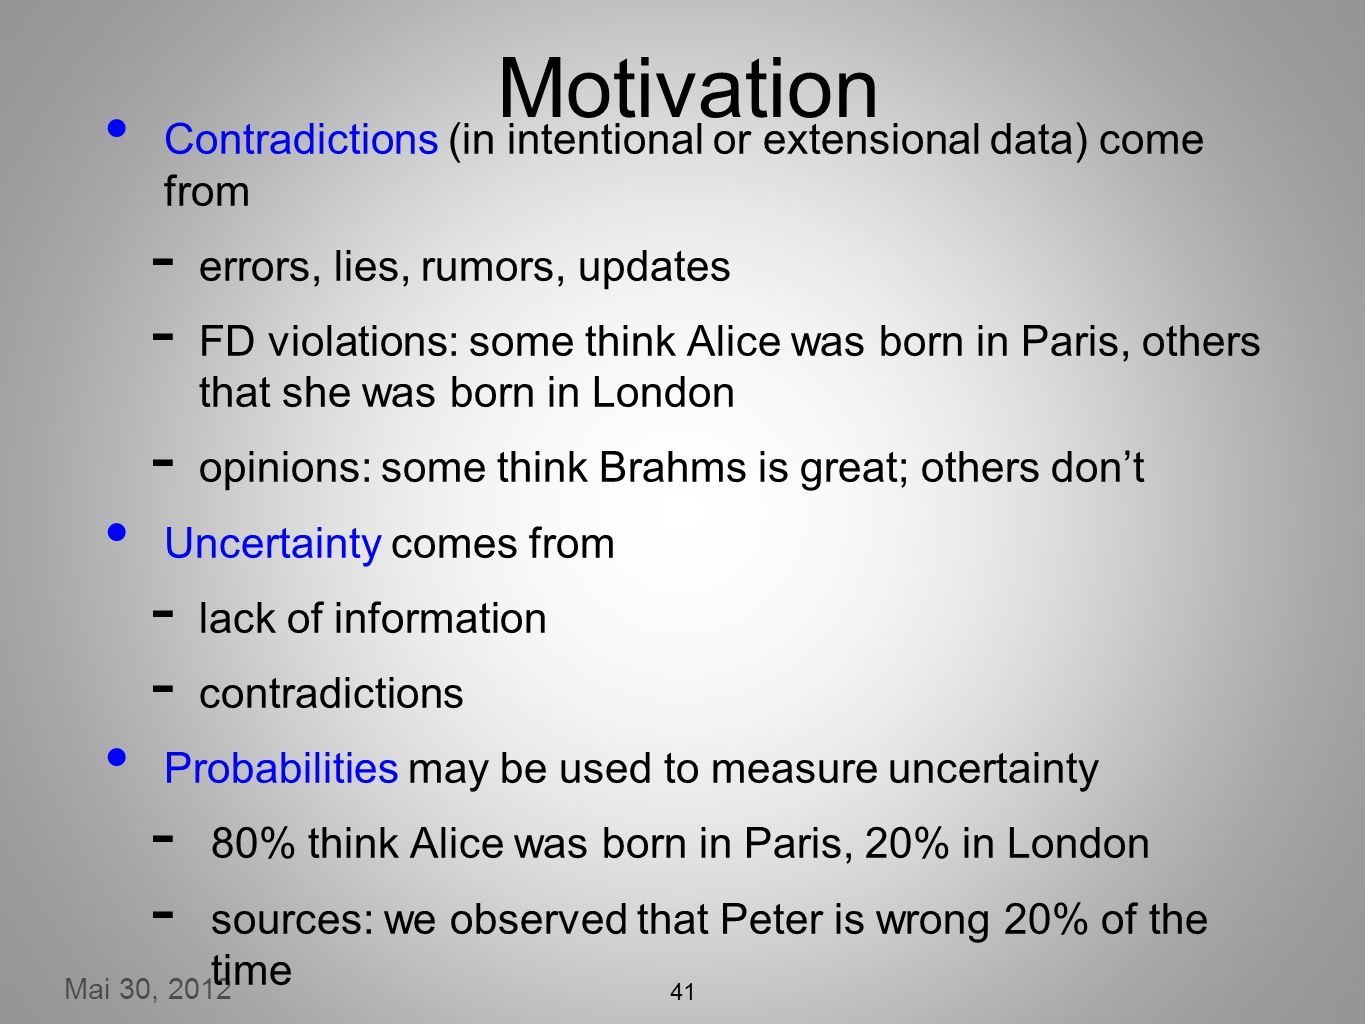 Mai 30, 2012 41 Motivation Contradictions (in intentional or extensional data) come from errors, lies, rumors, updates FD violations: some think Alice was born in Paris, others that she was born in London opinions: some think Brahms is great; others dont Uncertainty comes from lack of information contradictions Probabilities may be used to measure uncertainty 80% think Alice was born in Paris, 20% in London sources: we observed that Peter is wrong 20% of the time